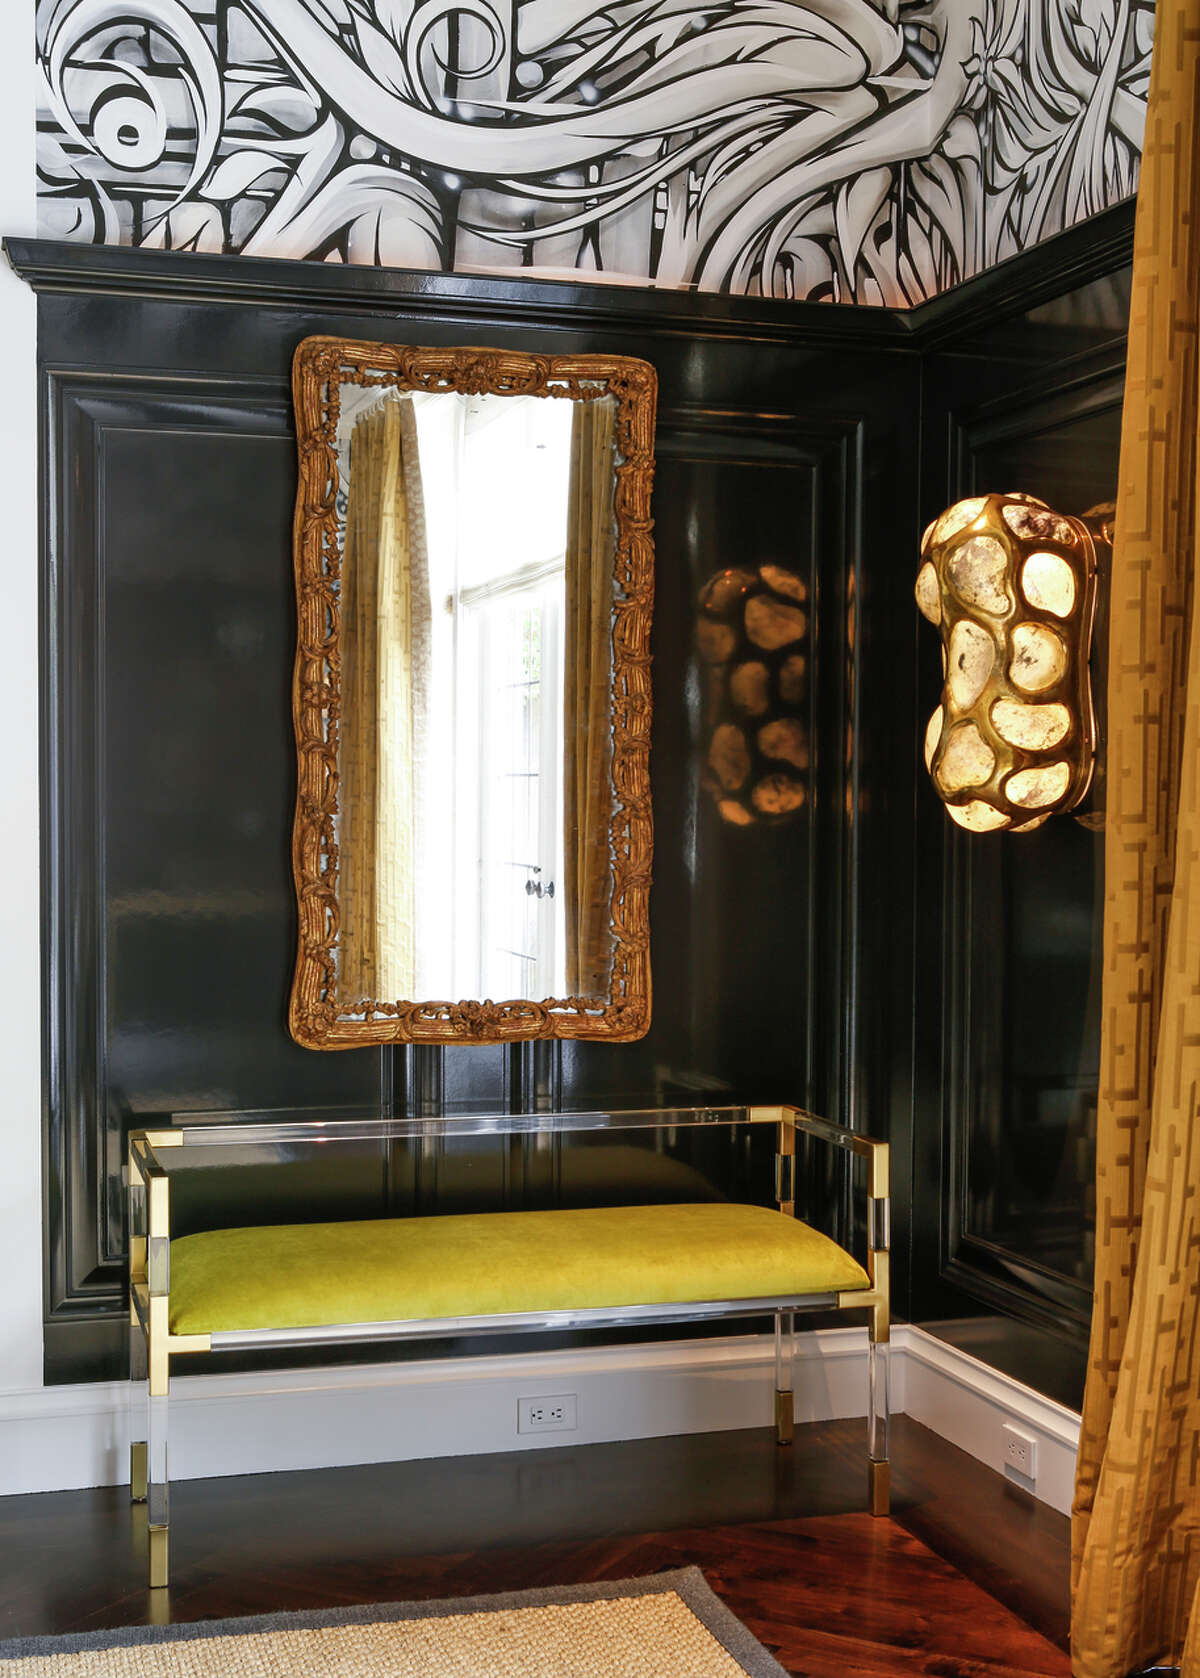 Starin uses classically inspired, contemporary furniture with simple, clean lines to freshen up the Victorian interior.